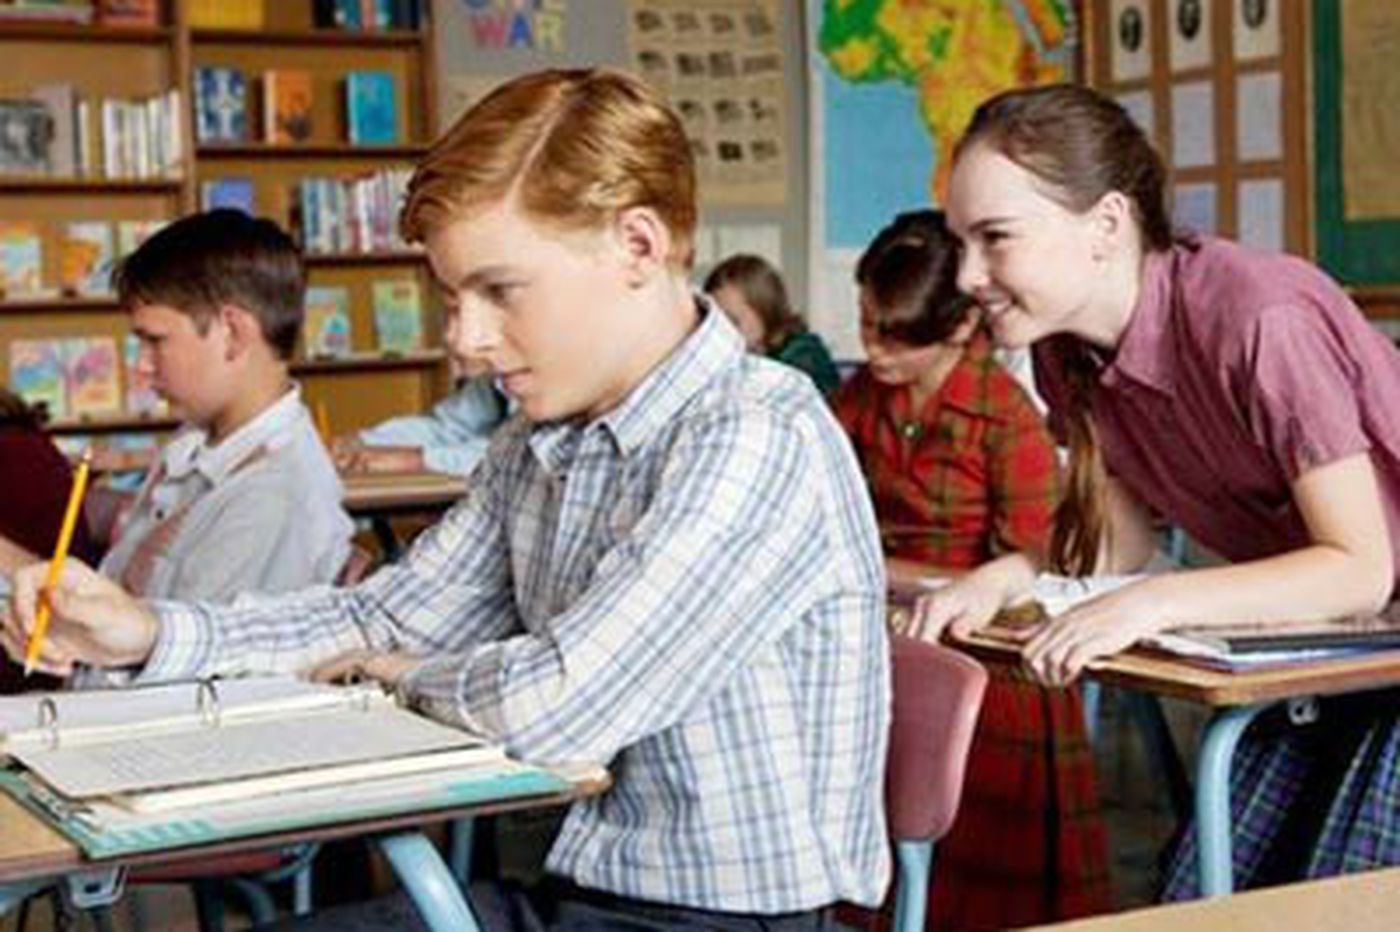 'Flipped' tells a timeless story